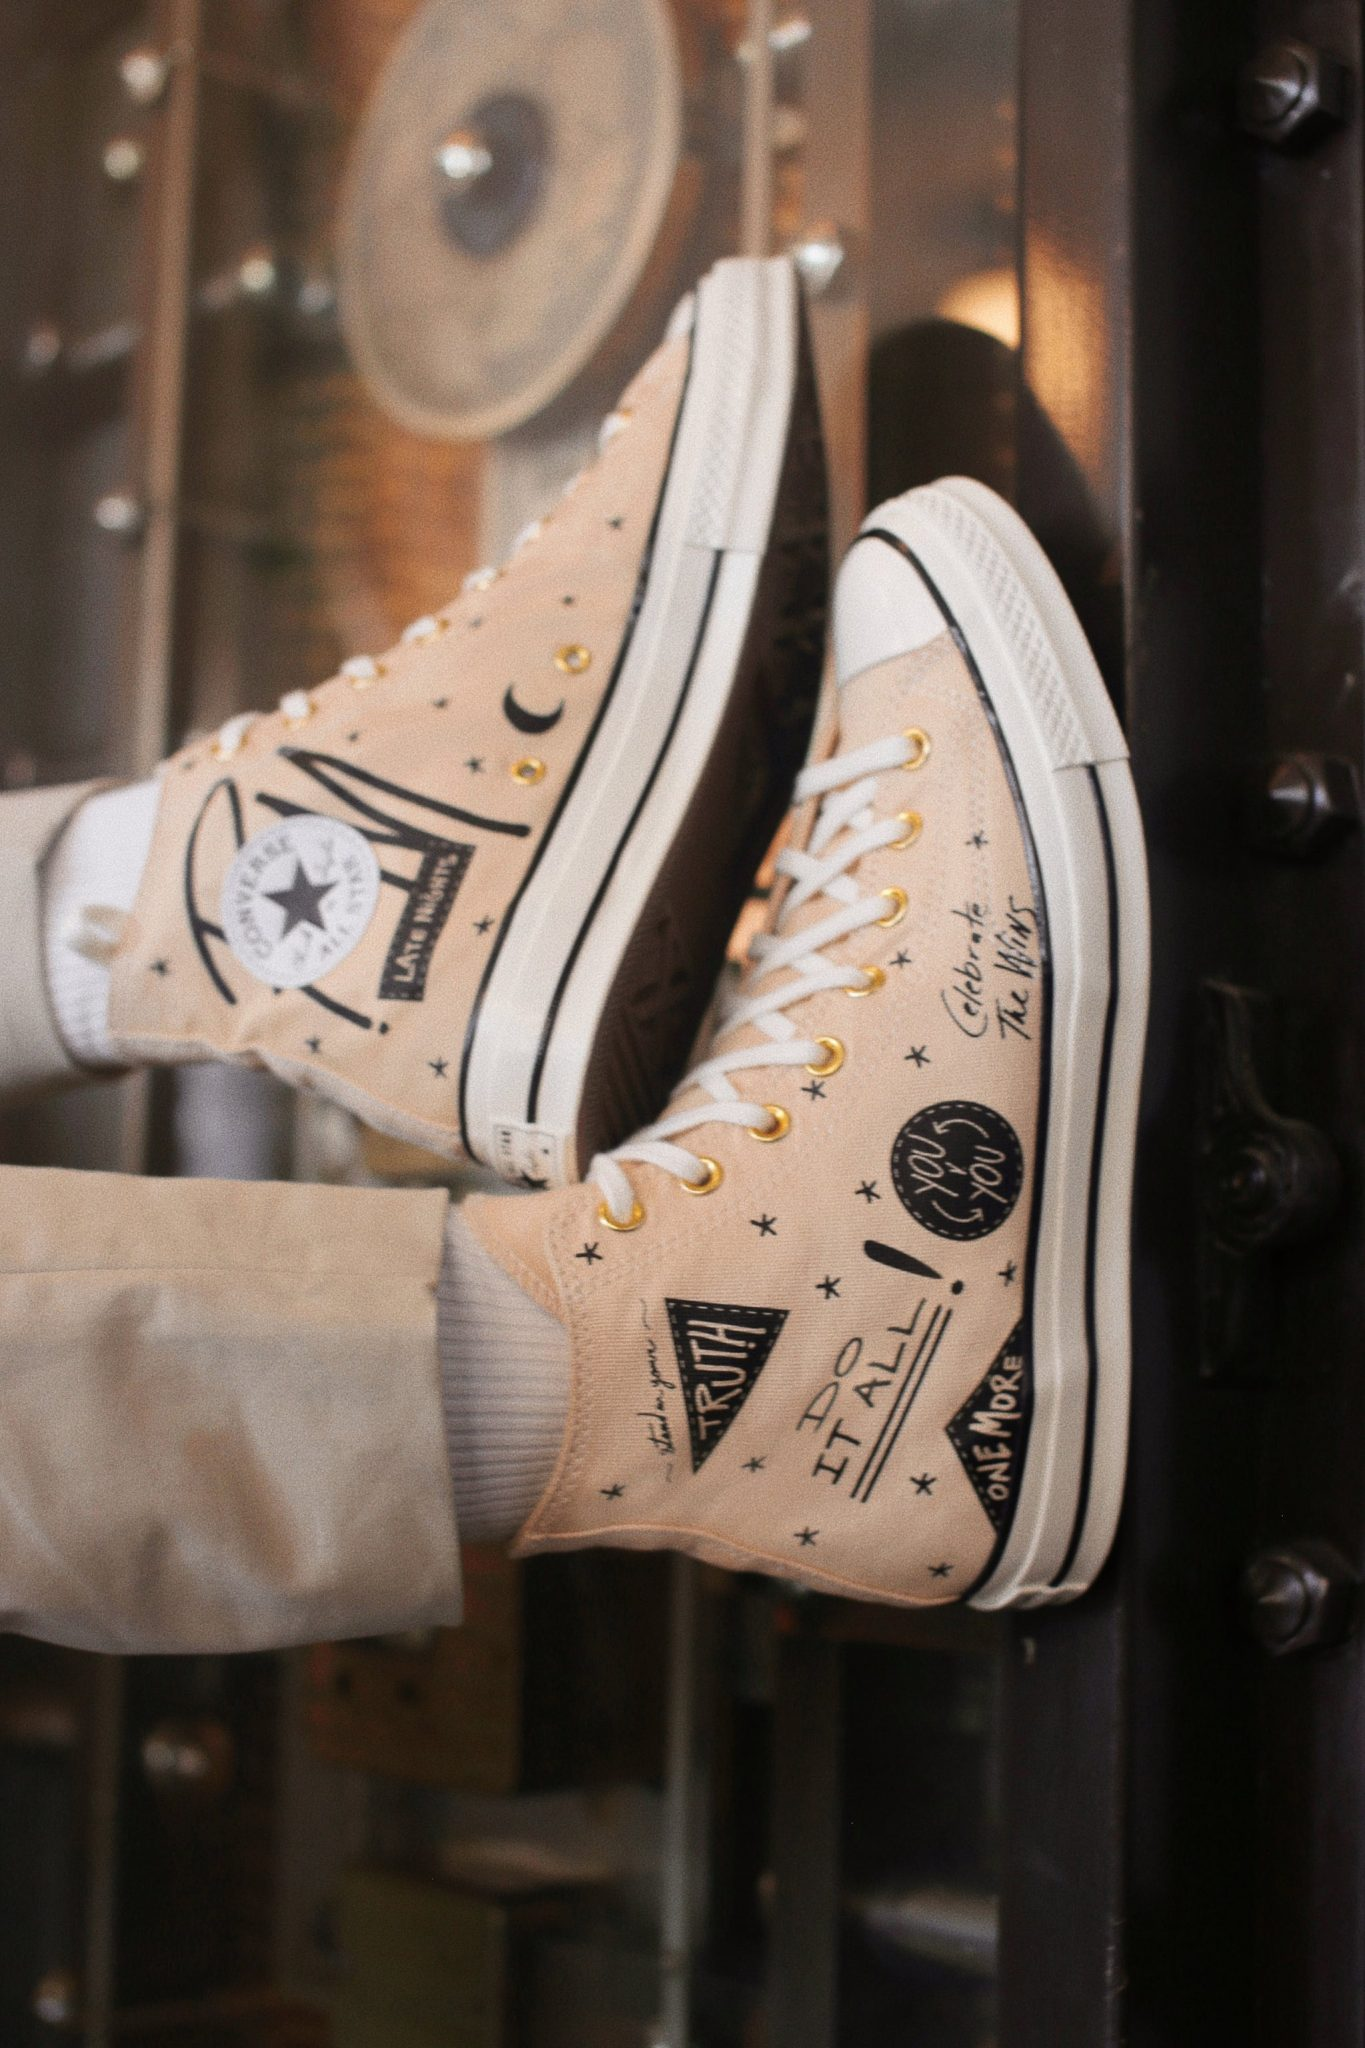 issa rae converse sneaker collection28329 scaled